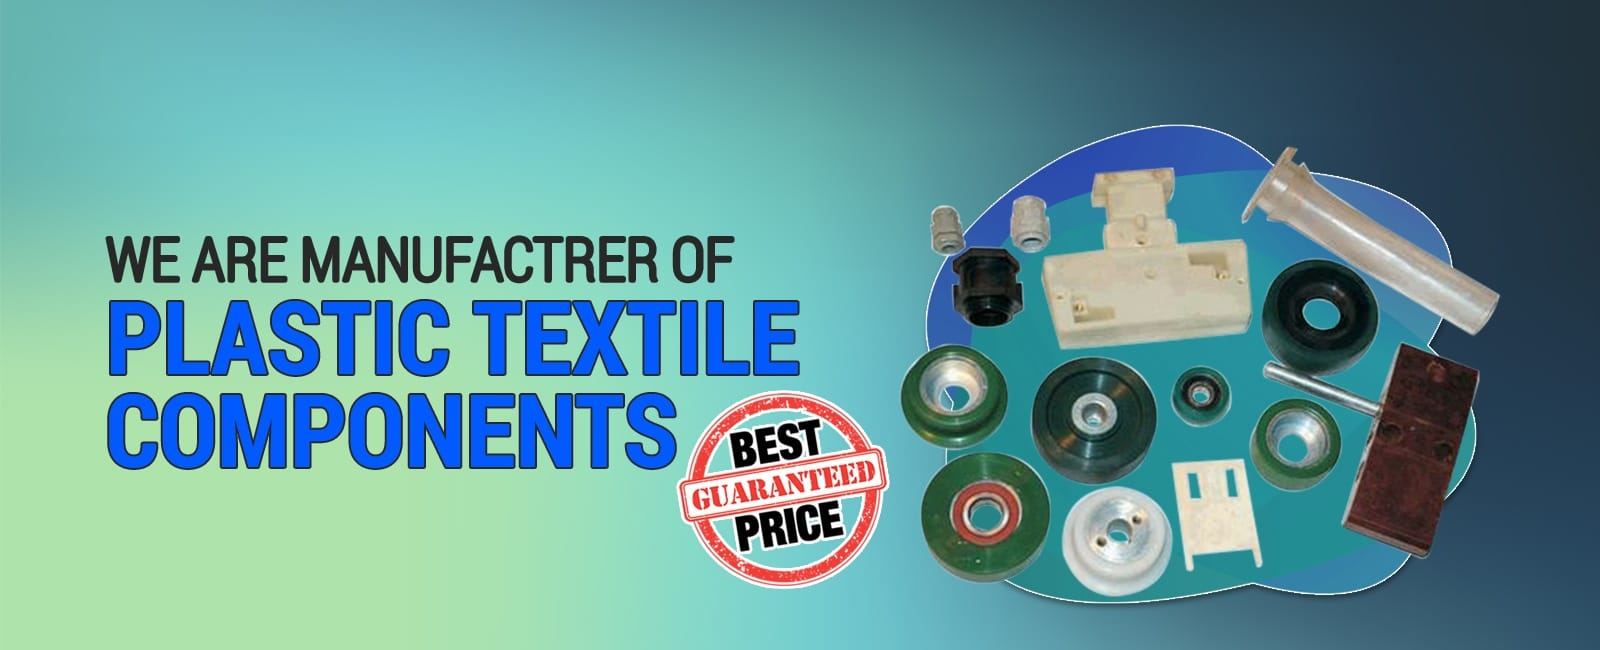 plastic textile components manufacturers india